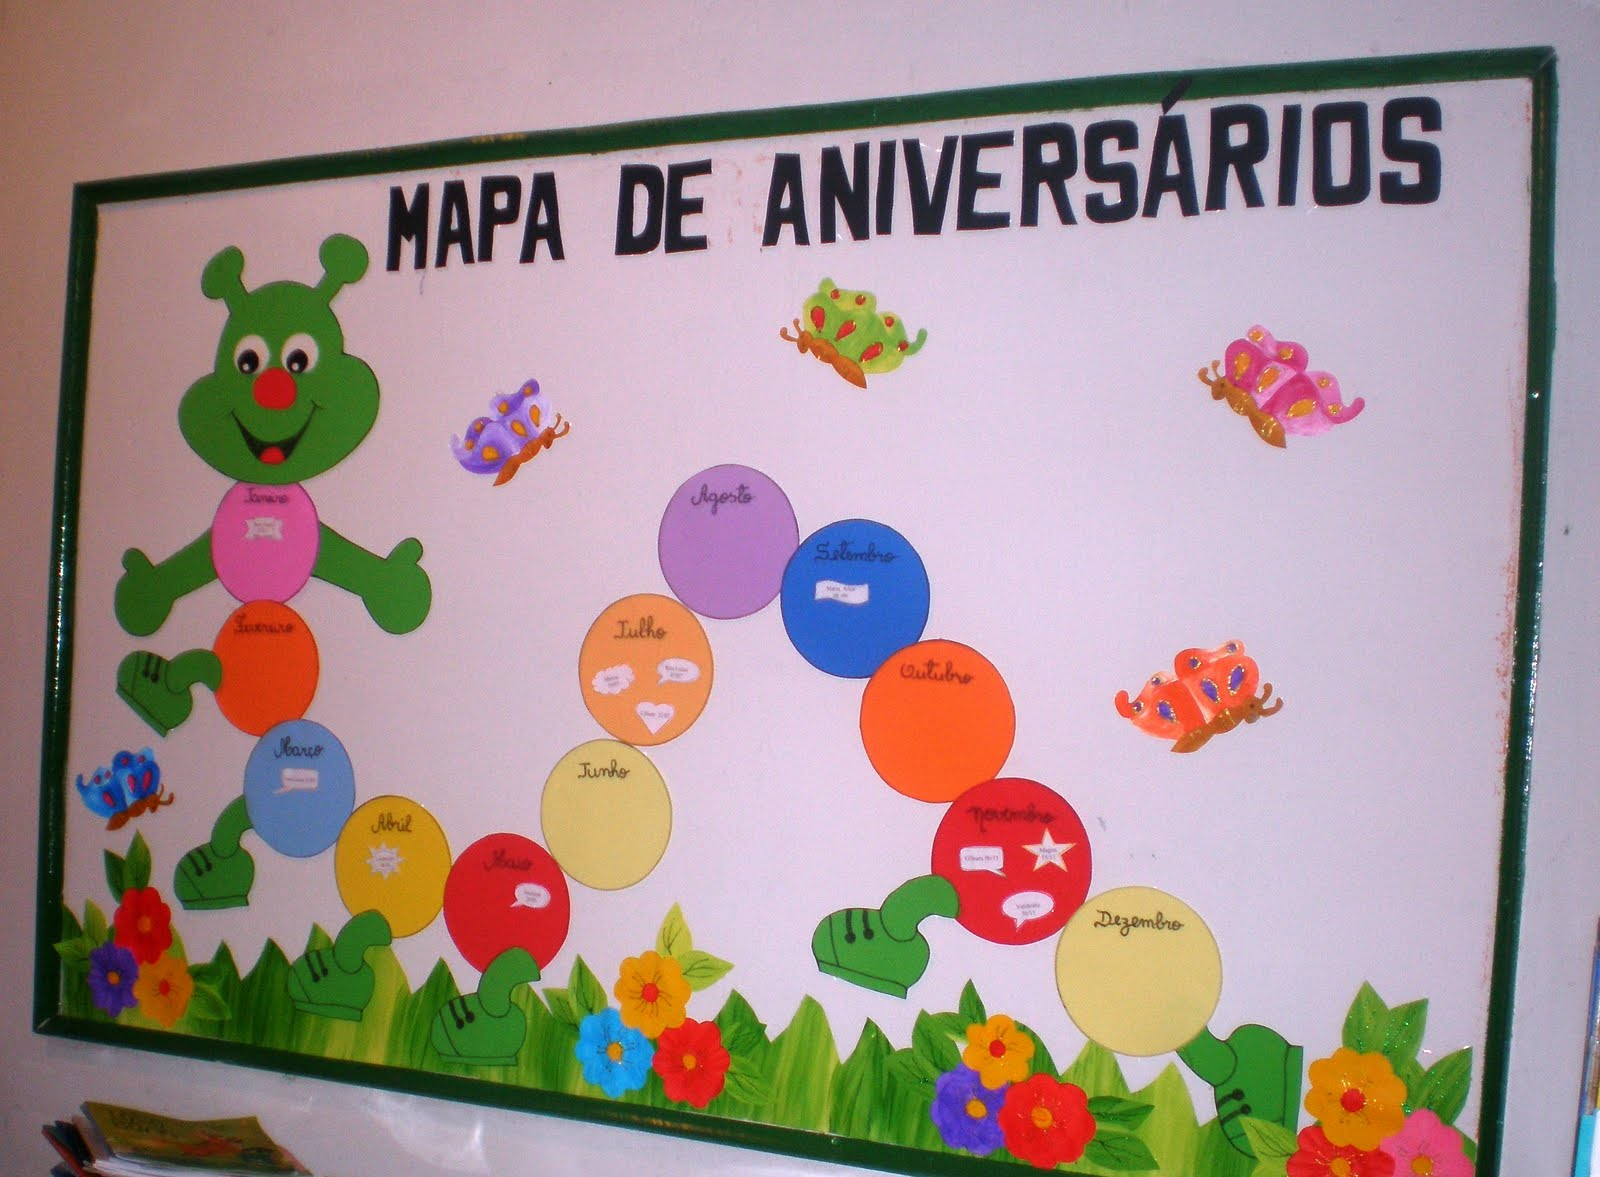 Educa o adventista blog painel de aniversrios for Como colocar papel mural